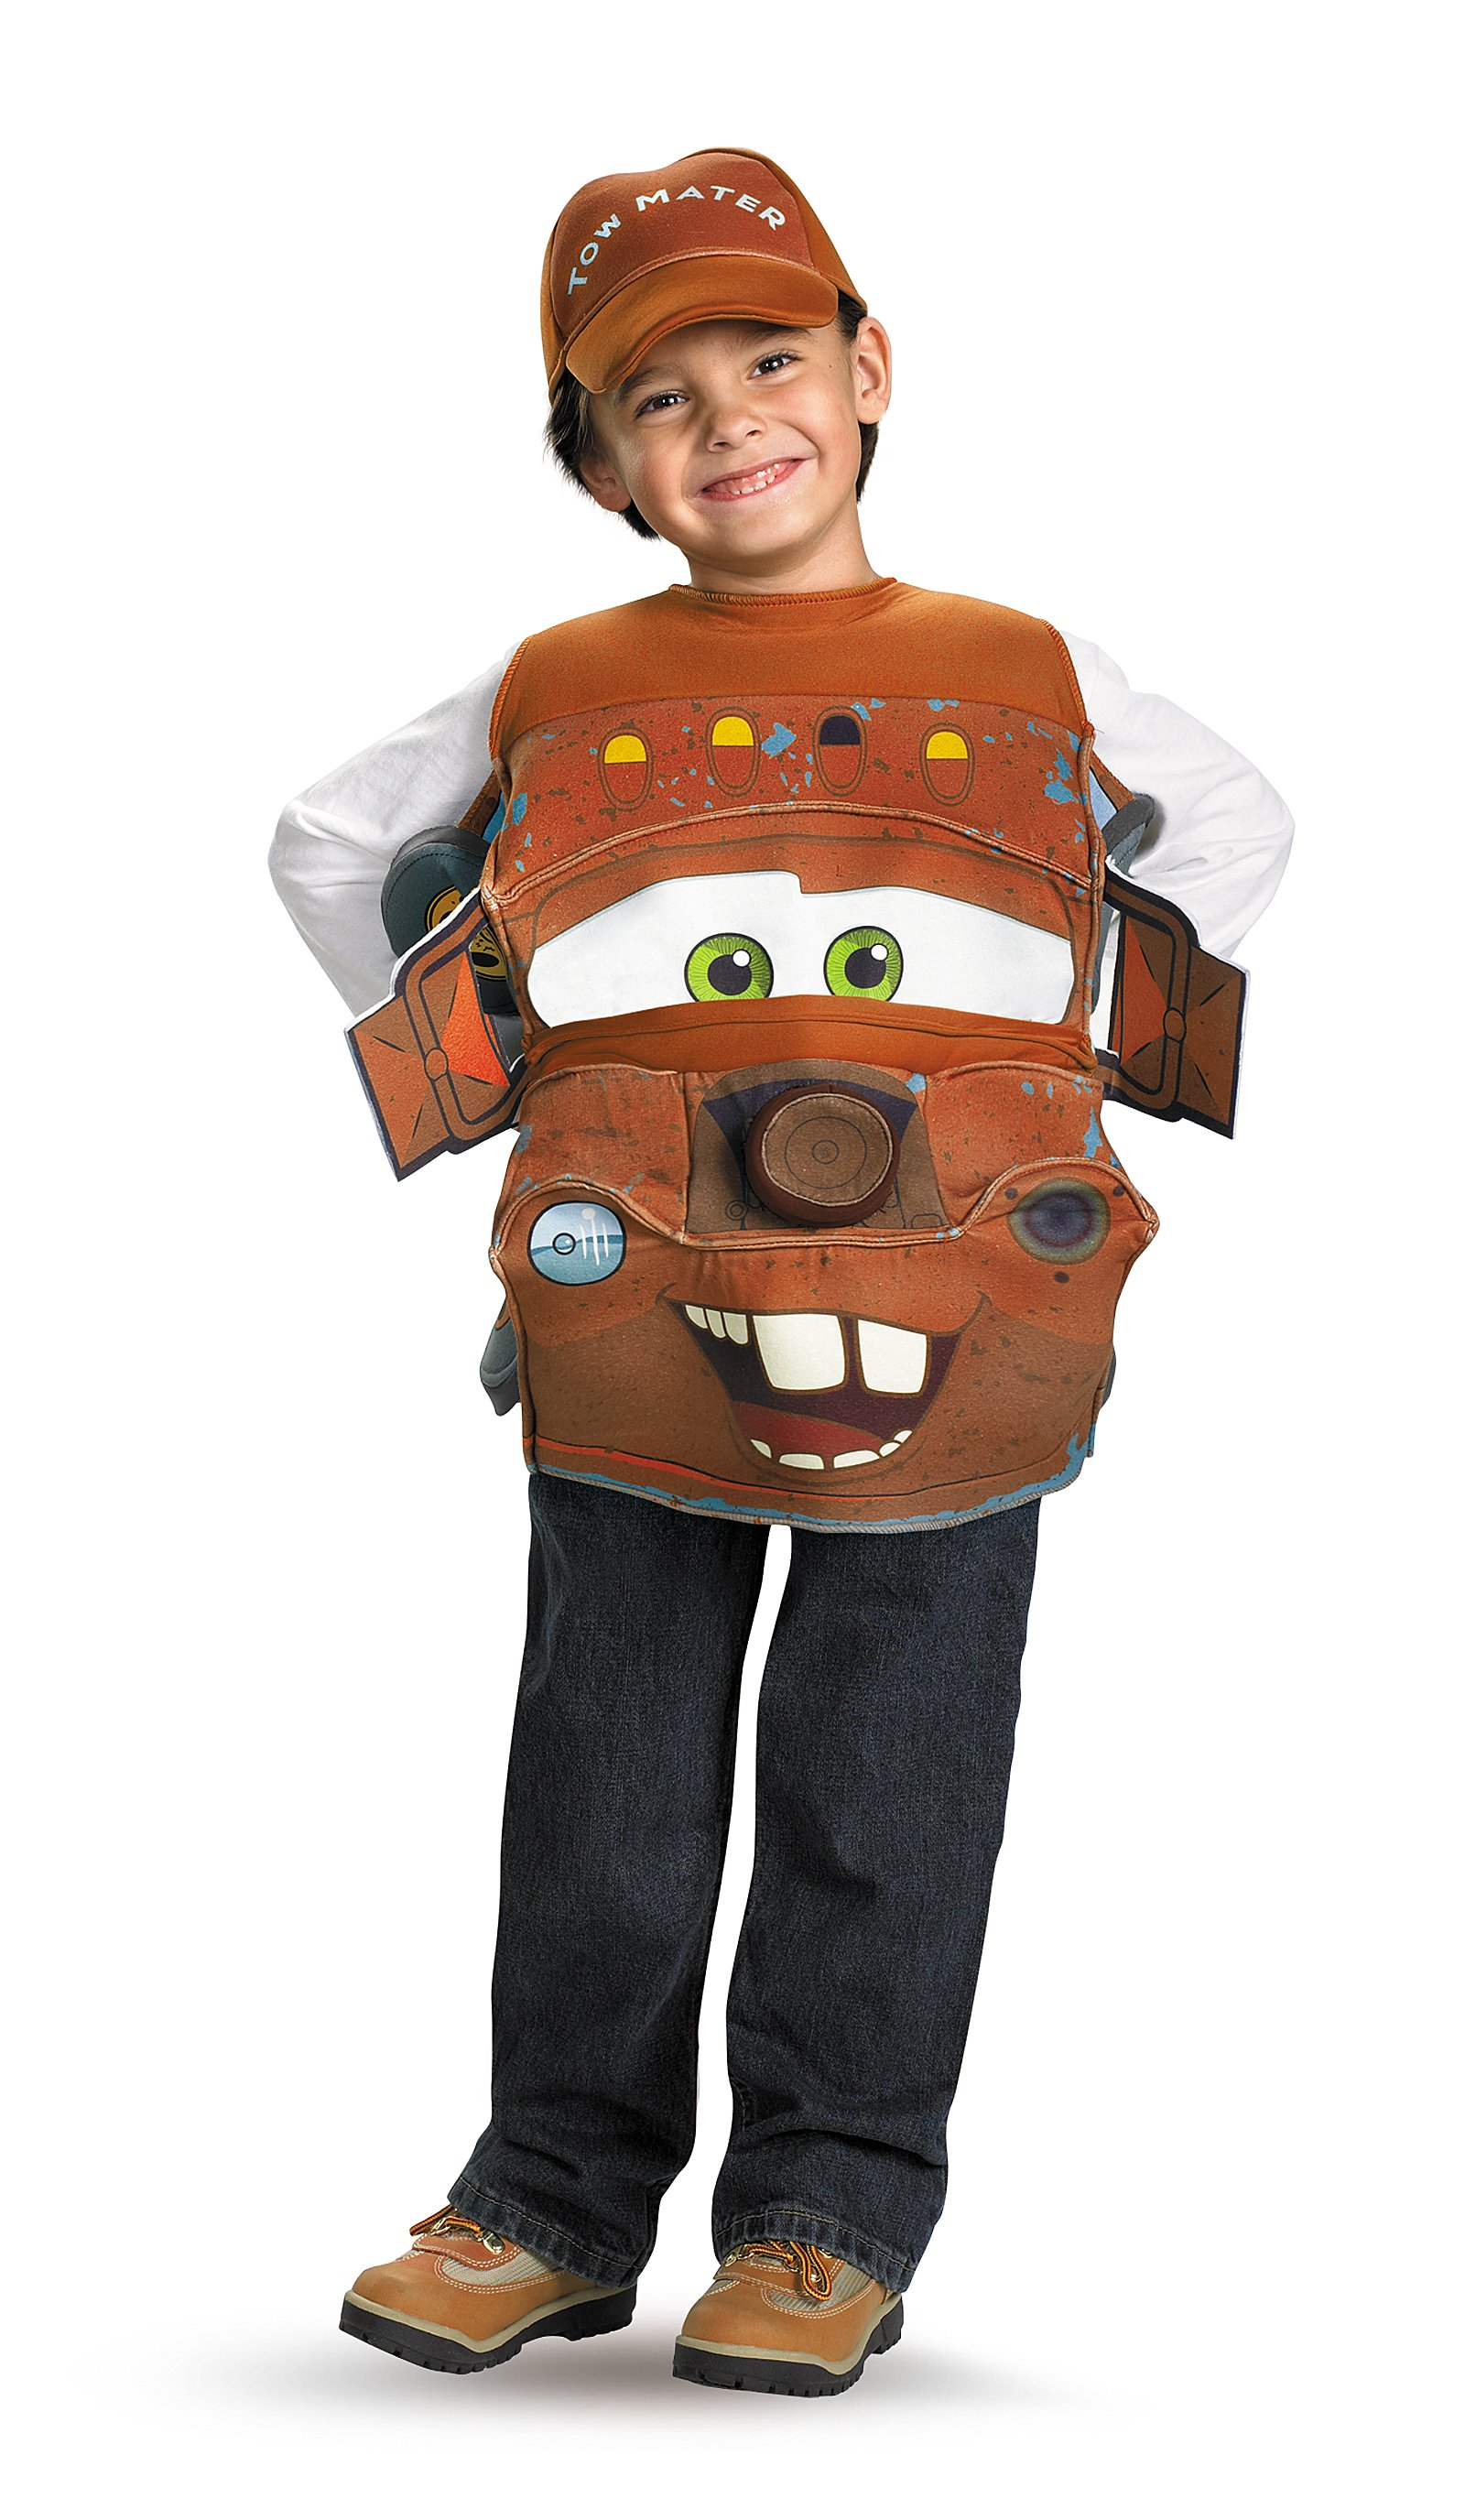 Cars 2 - Mater Deluxe Child Costume